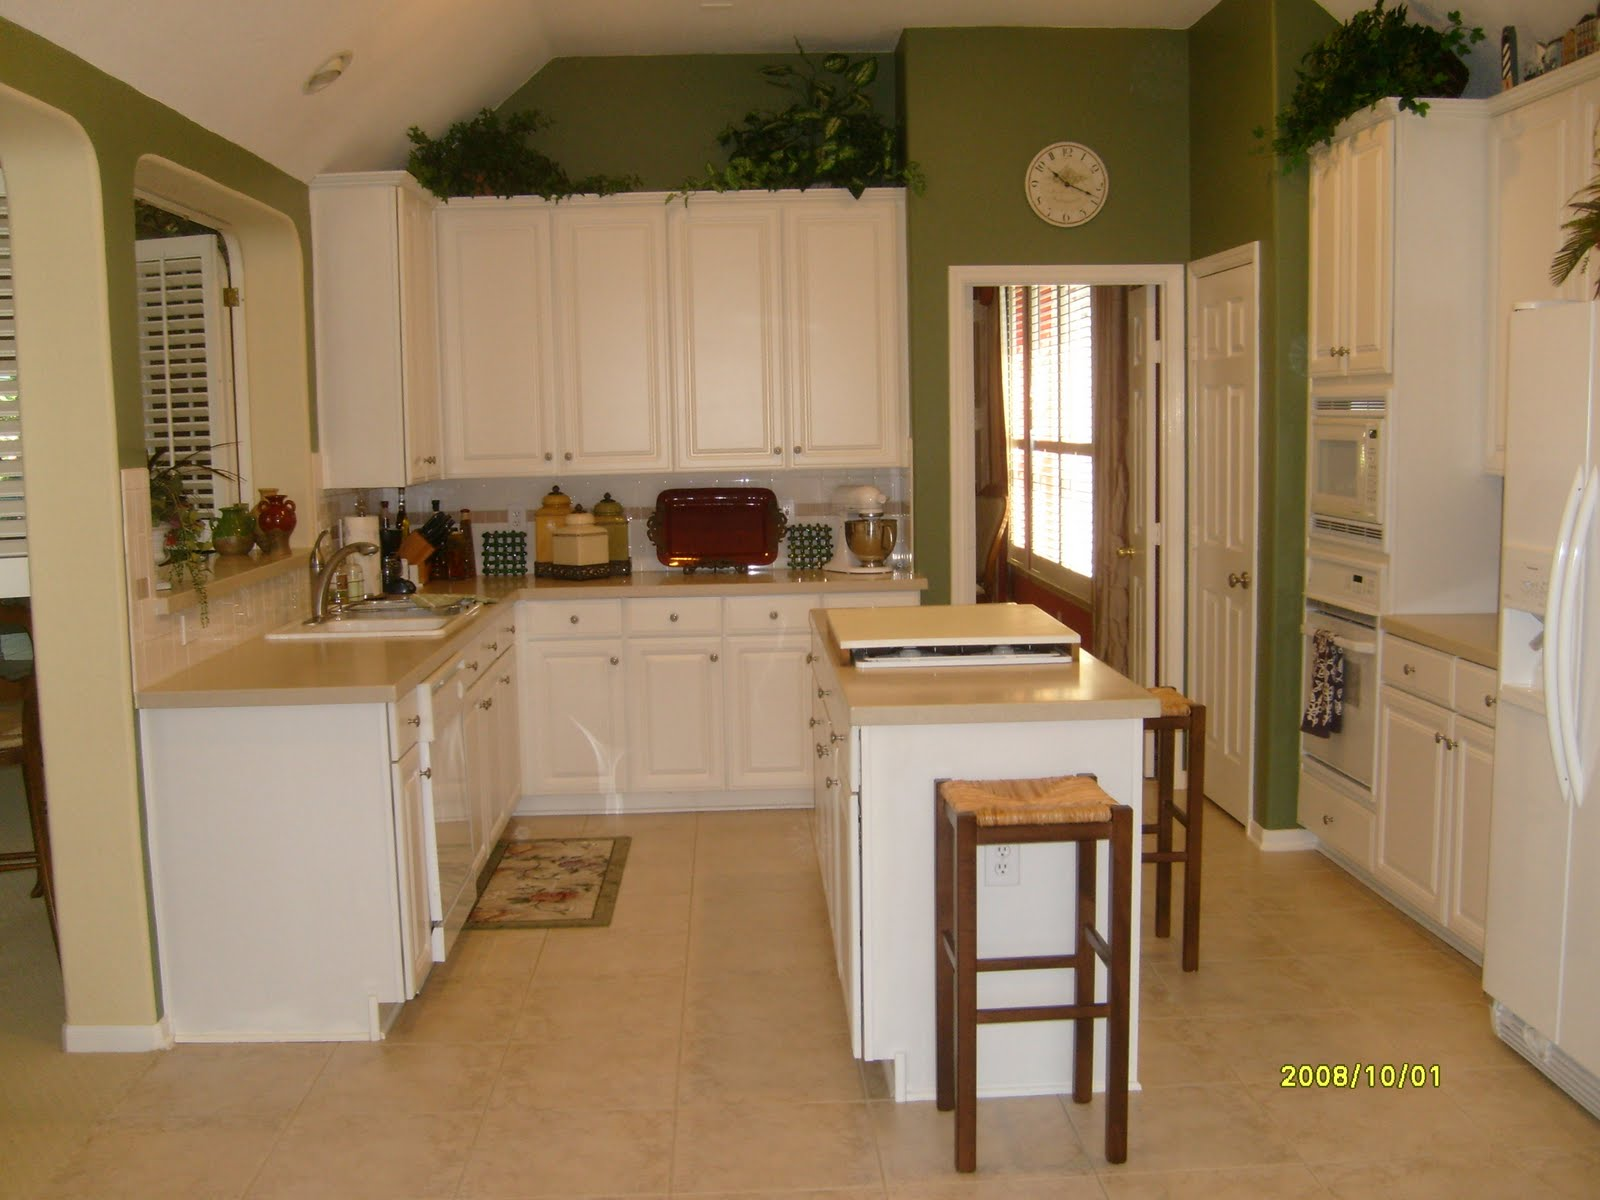 Small Kitchen Remodel Before and After | 1600 x 1200 · 154 kB · jpeg | 1600 x 1200 · 154 kB · jpeg